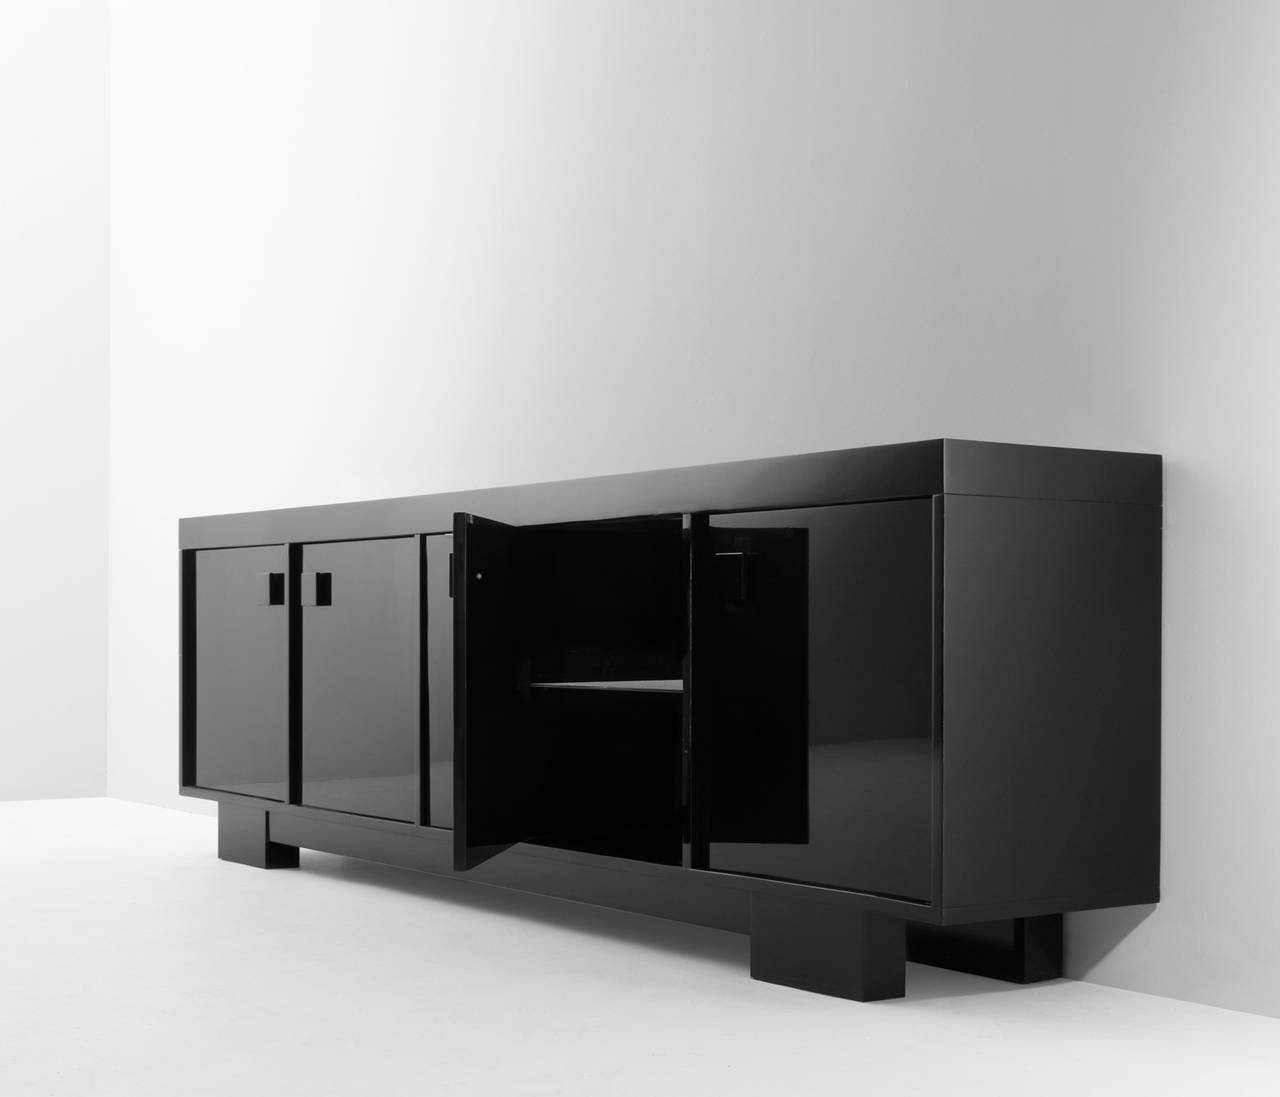 Extreme Long High Gloss Credenzaveranneman For Sale At 1Stdibs within High Gloss Black Sideboards (Image 14 of 30)